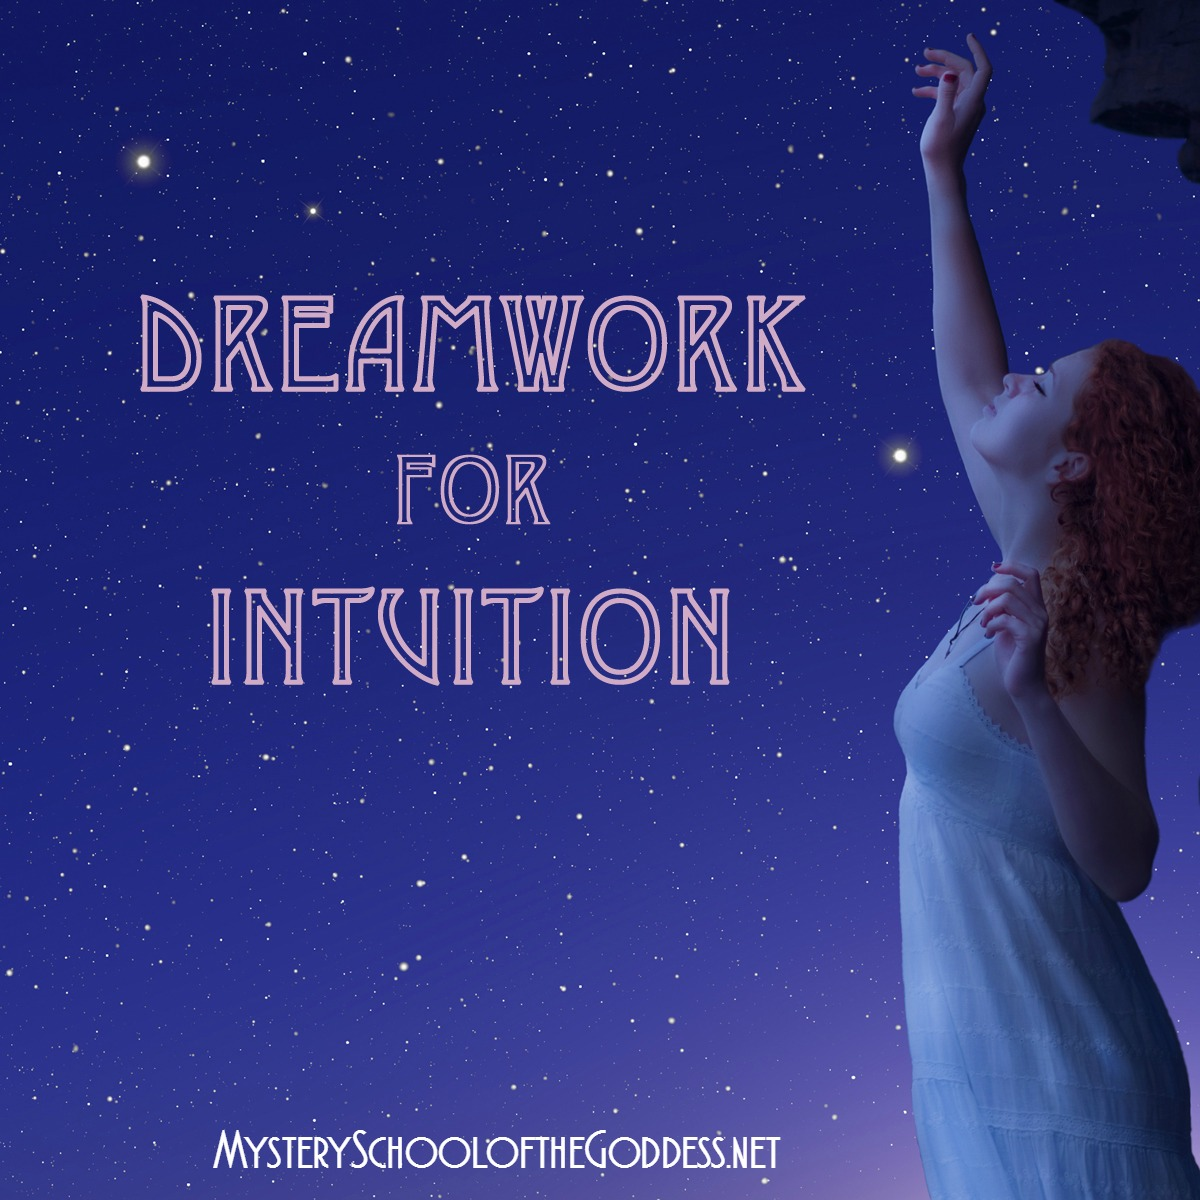 Dreamwork for Intuition Online Course with Charlotte Elea Mystery School of the Goddess